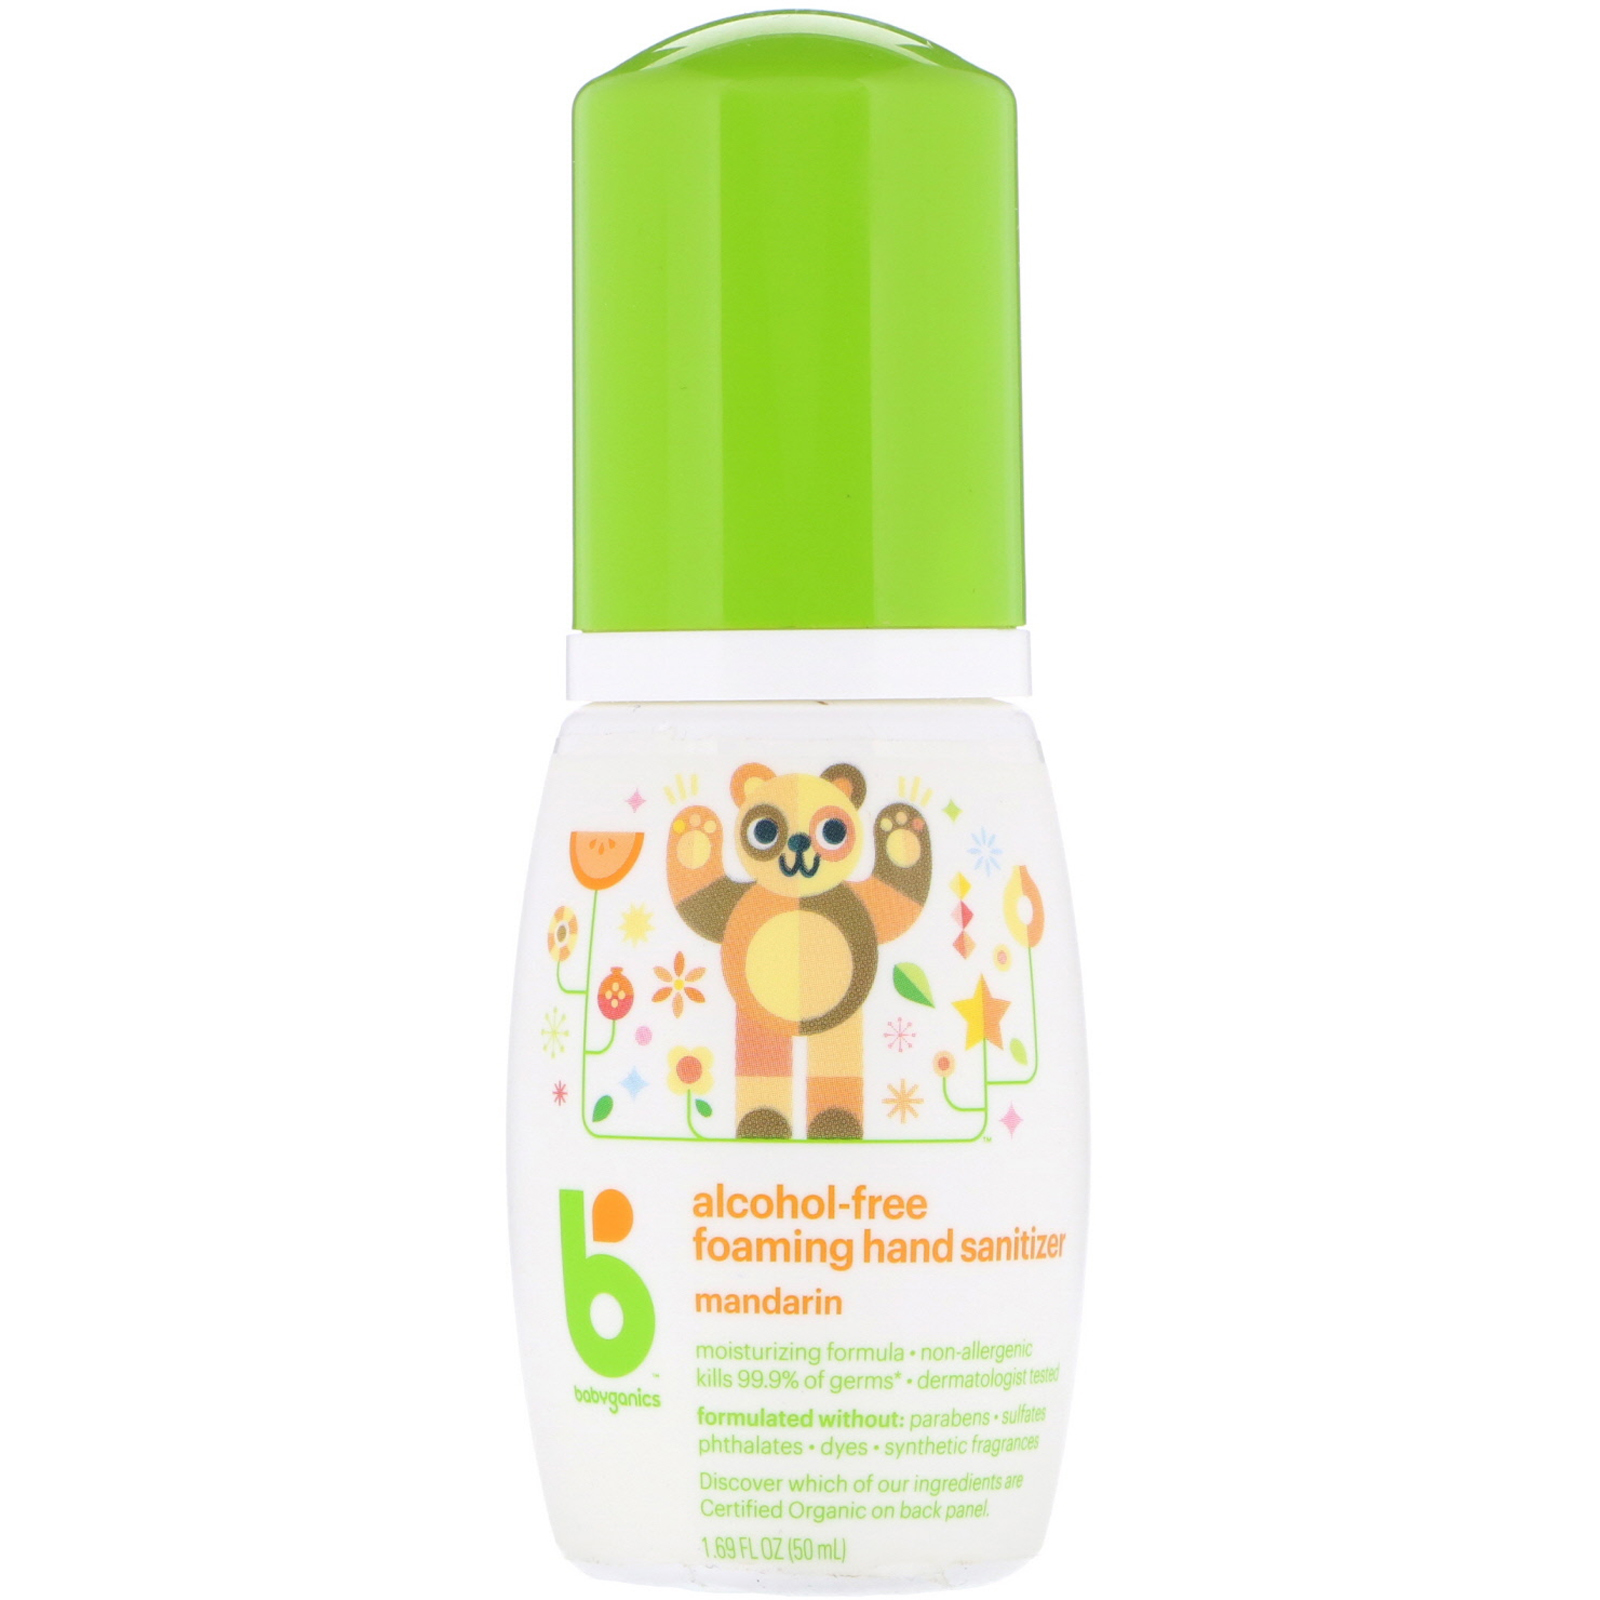 Babyganics Alcohol Free Foaming Hand Sanitizer Mandarin 1 69